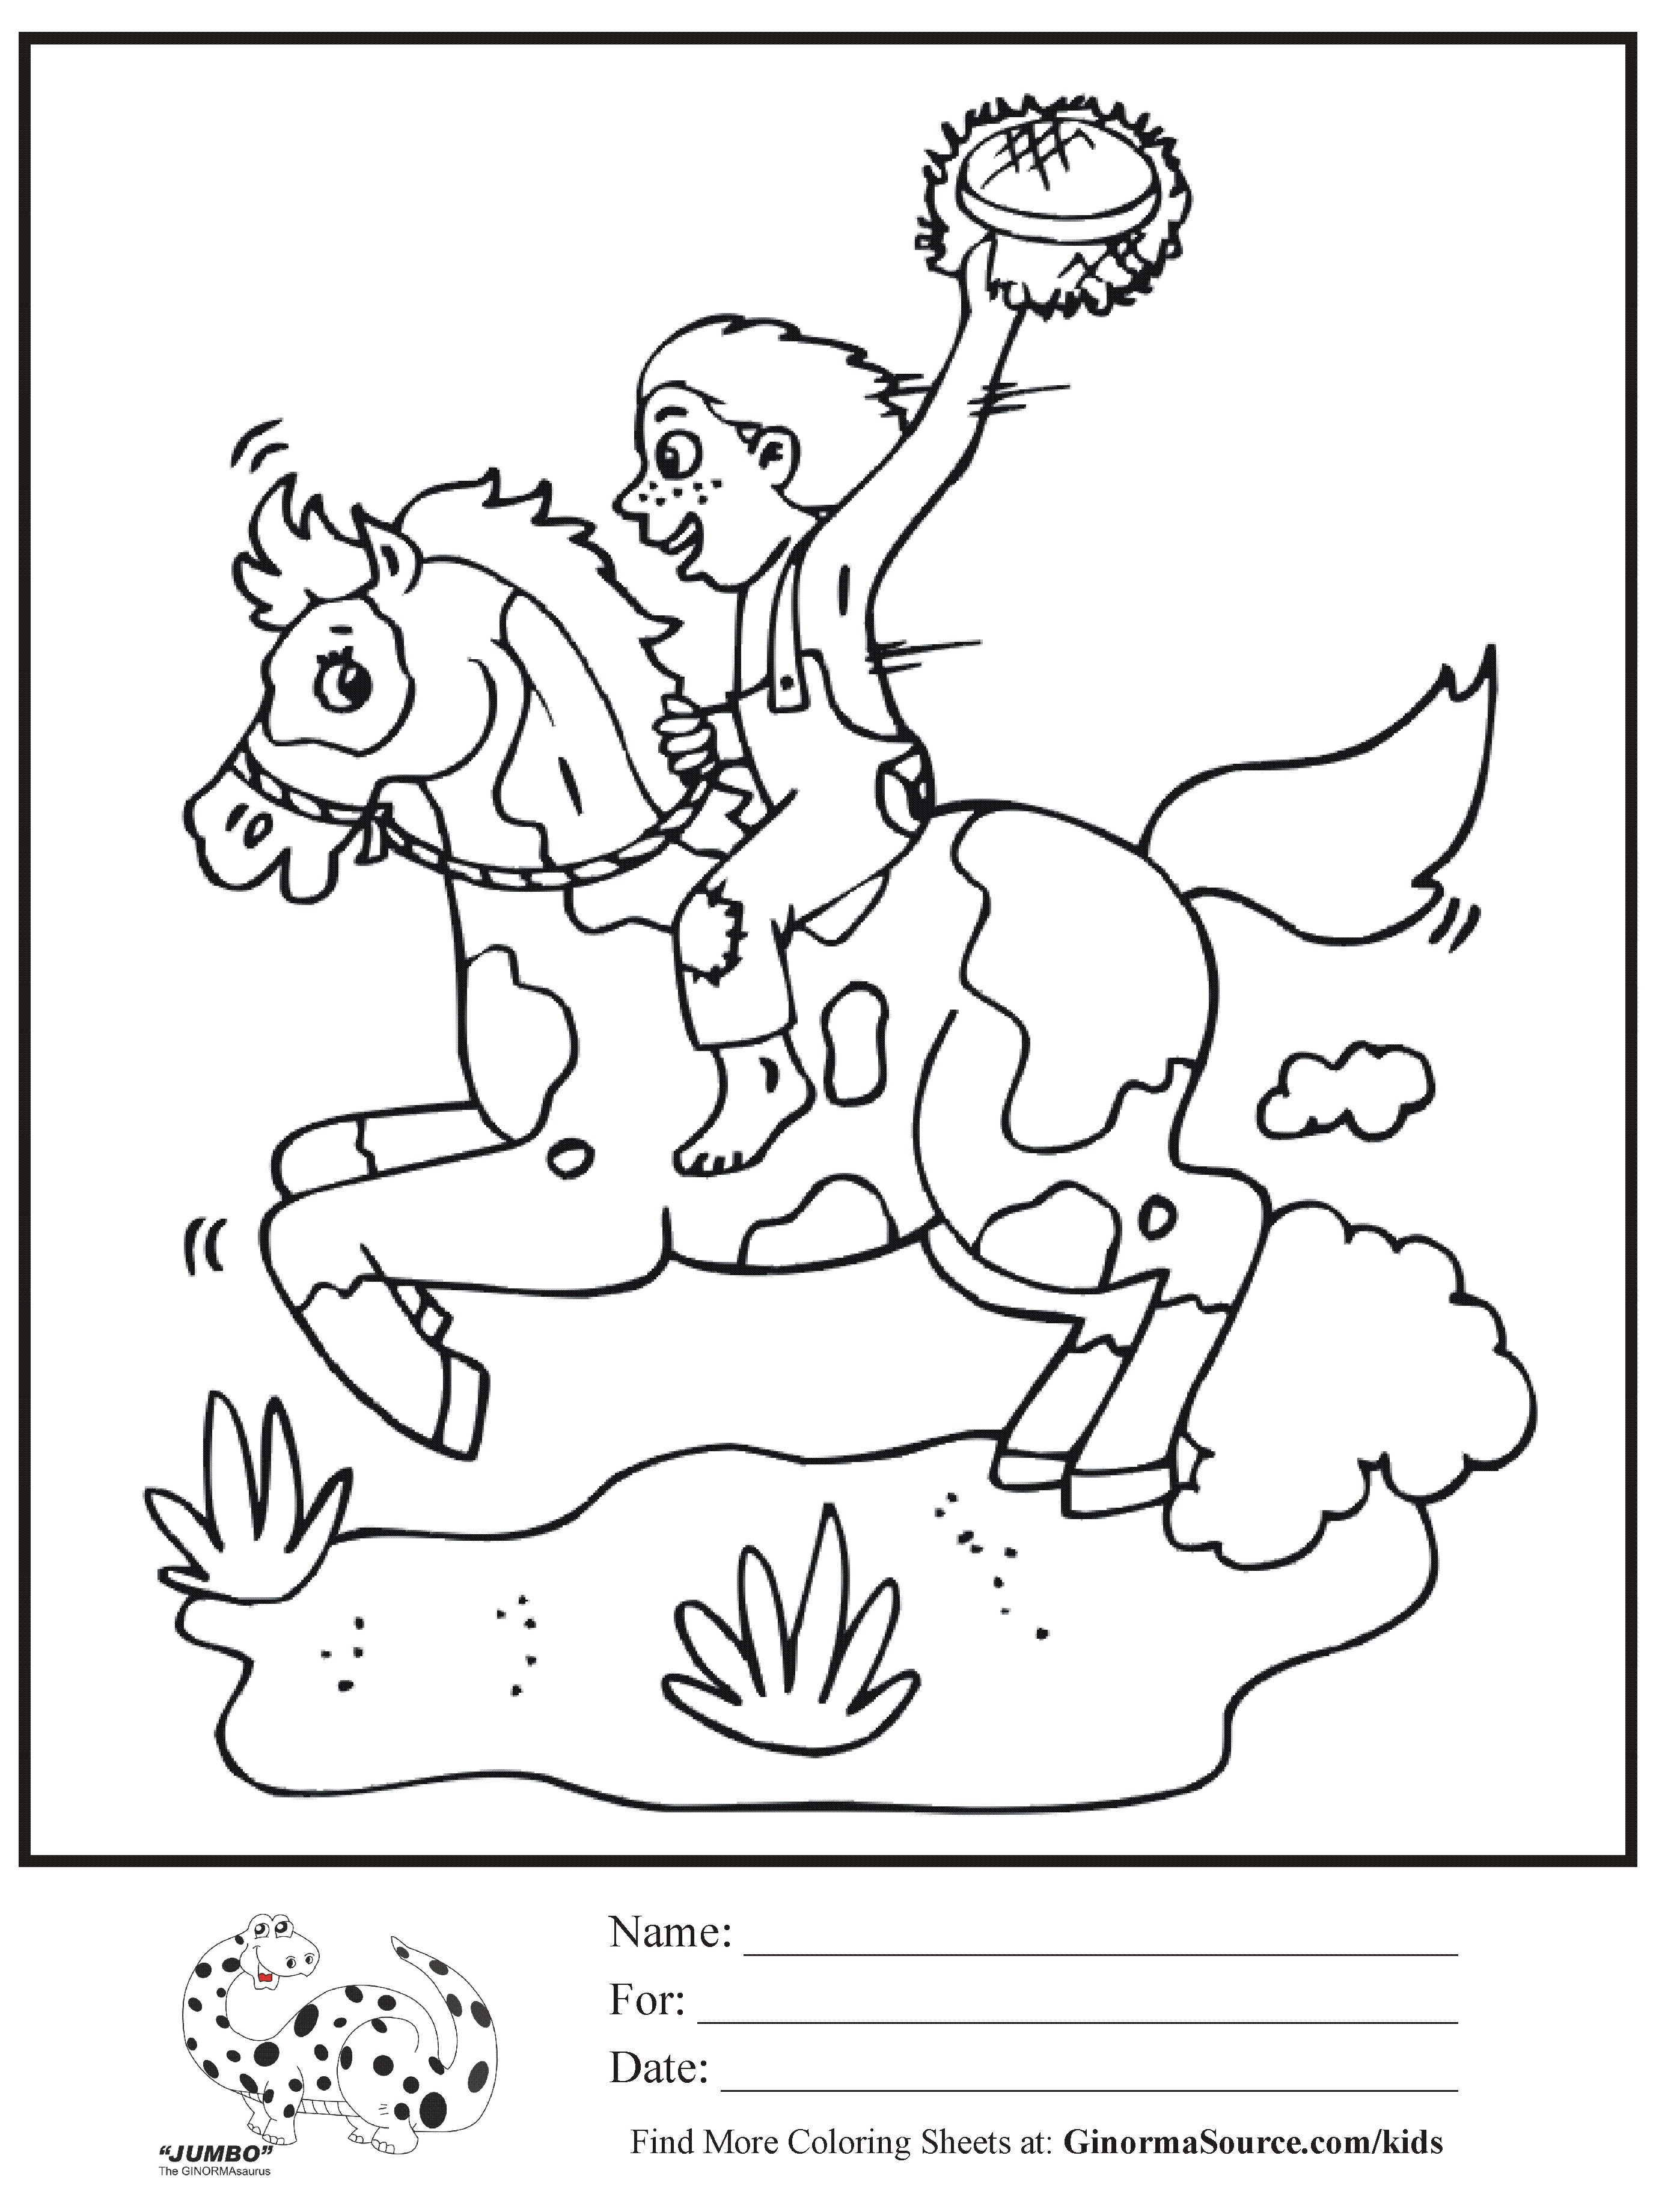 The Best Free Horseback Drawing Images Download From 71